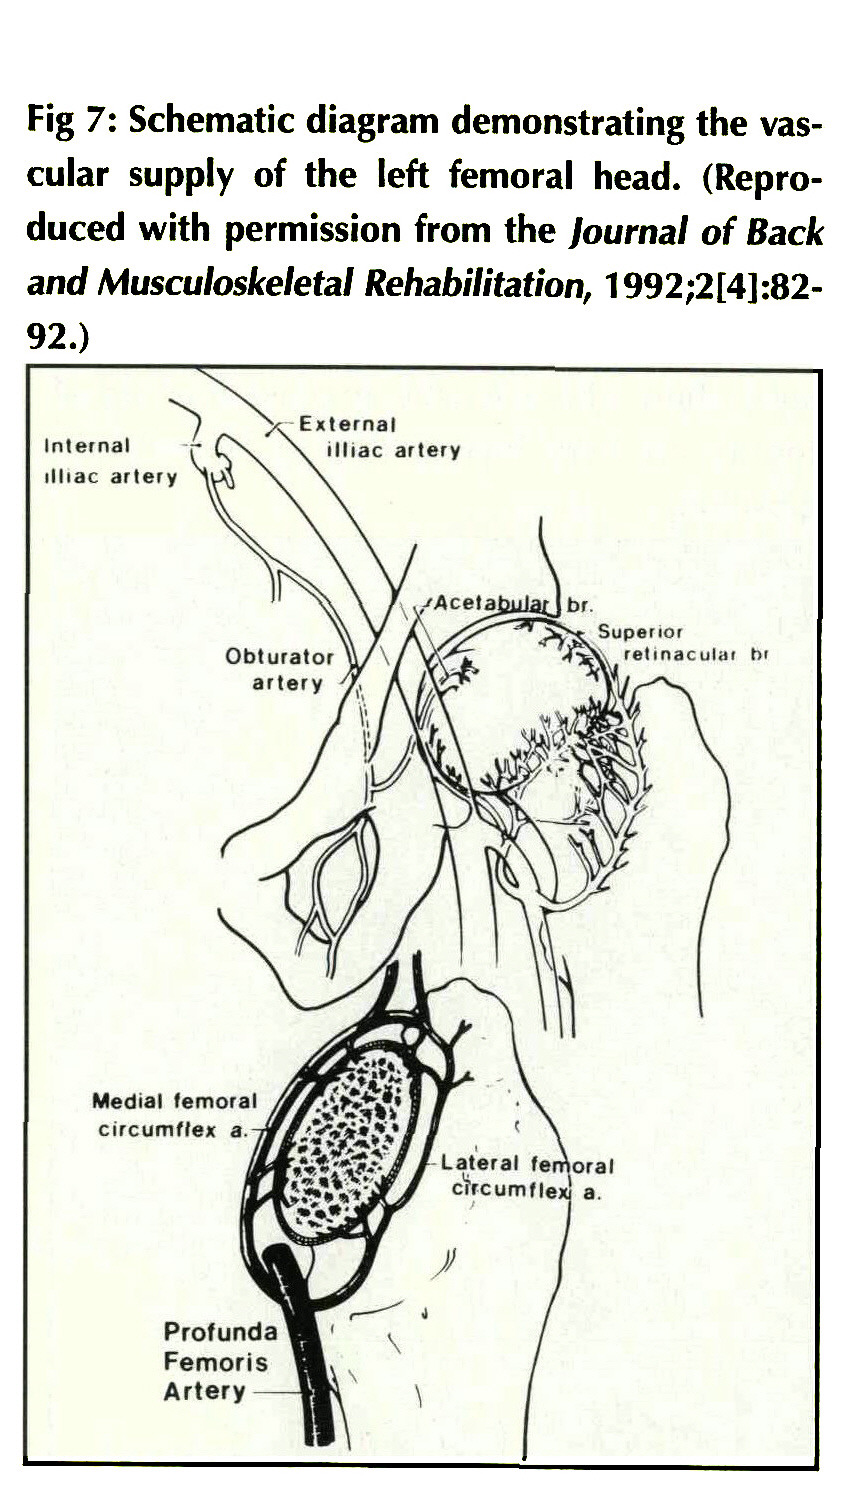 hight resolution of fig 7 schematic diagram demonstrating the vascular supply of the left femoral head